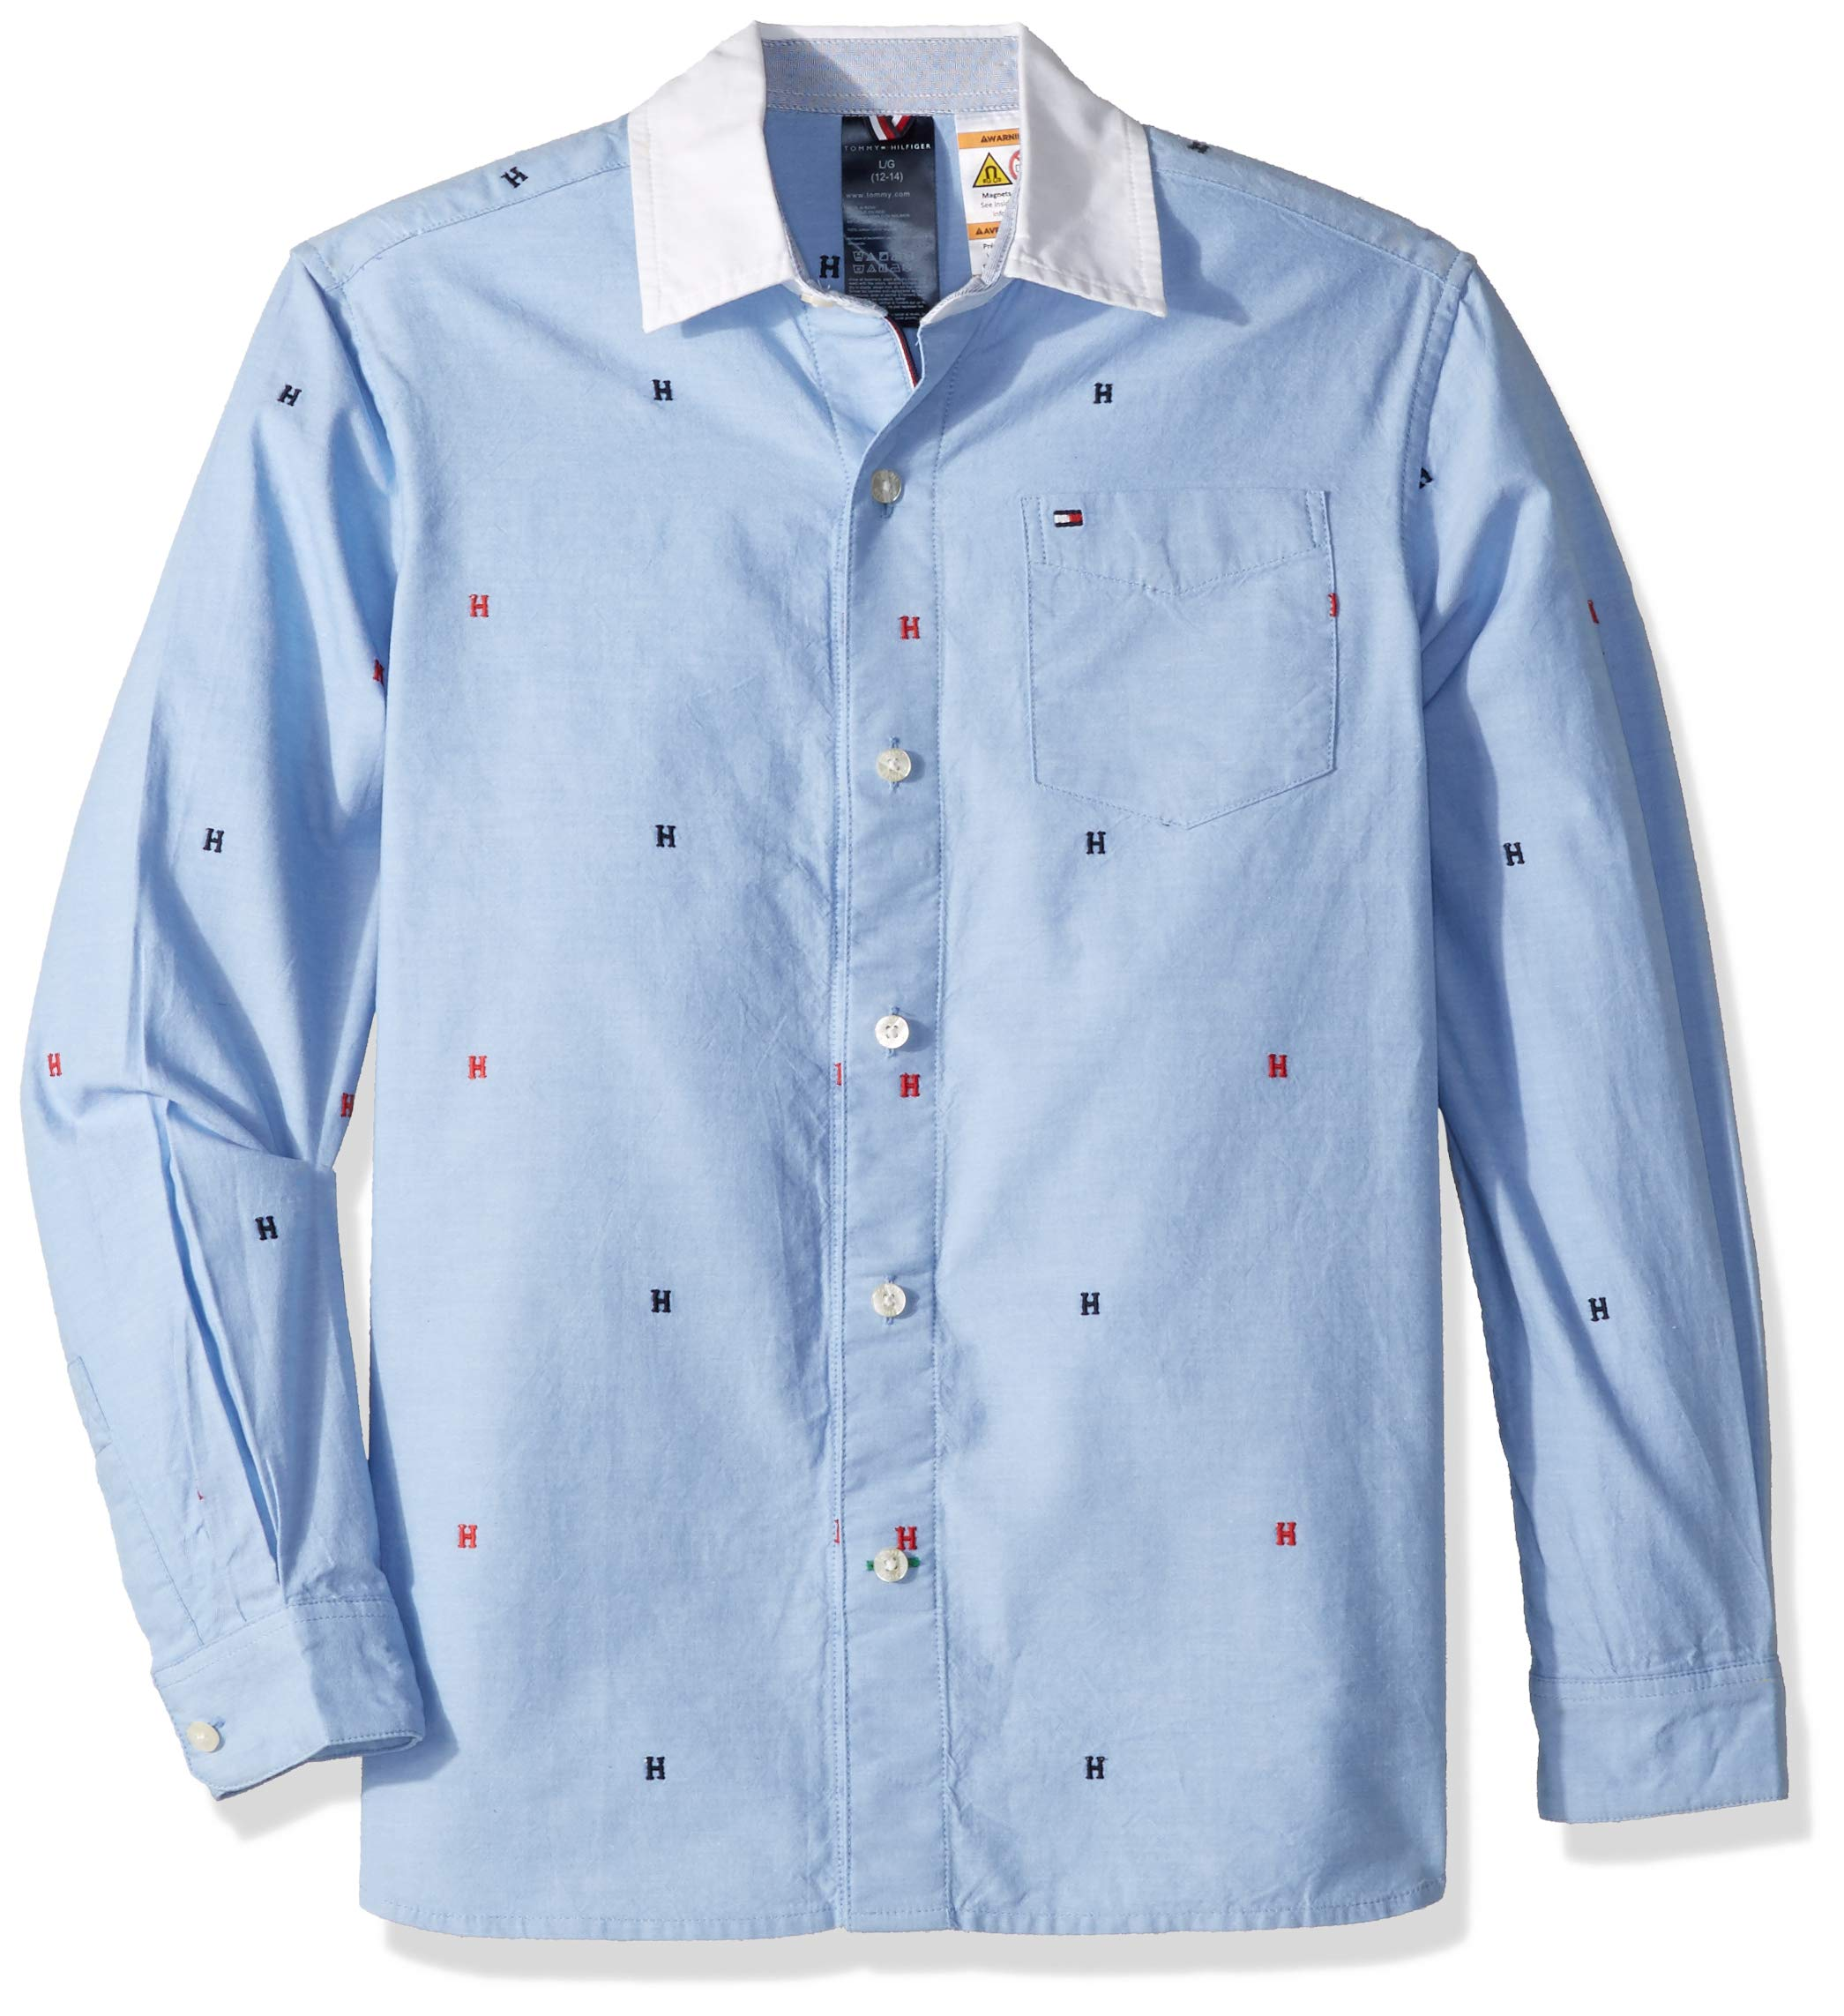 Tommy Hilfiger Boys' Adaptive Magnetic Button Shirt, Collection Blue Medium